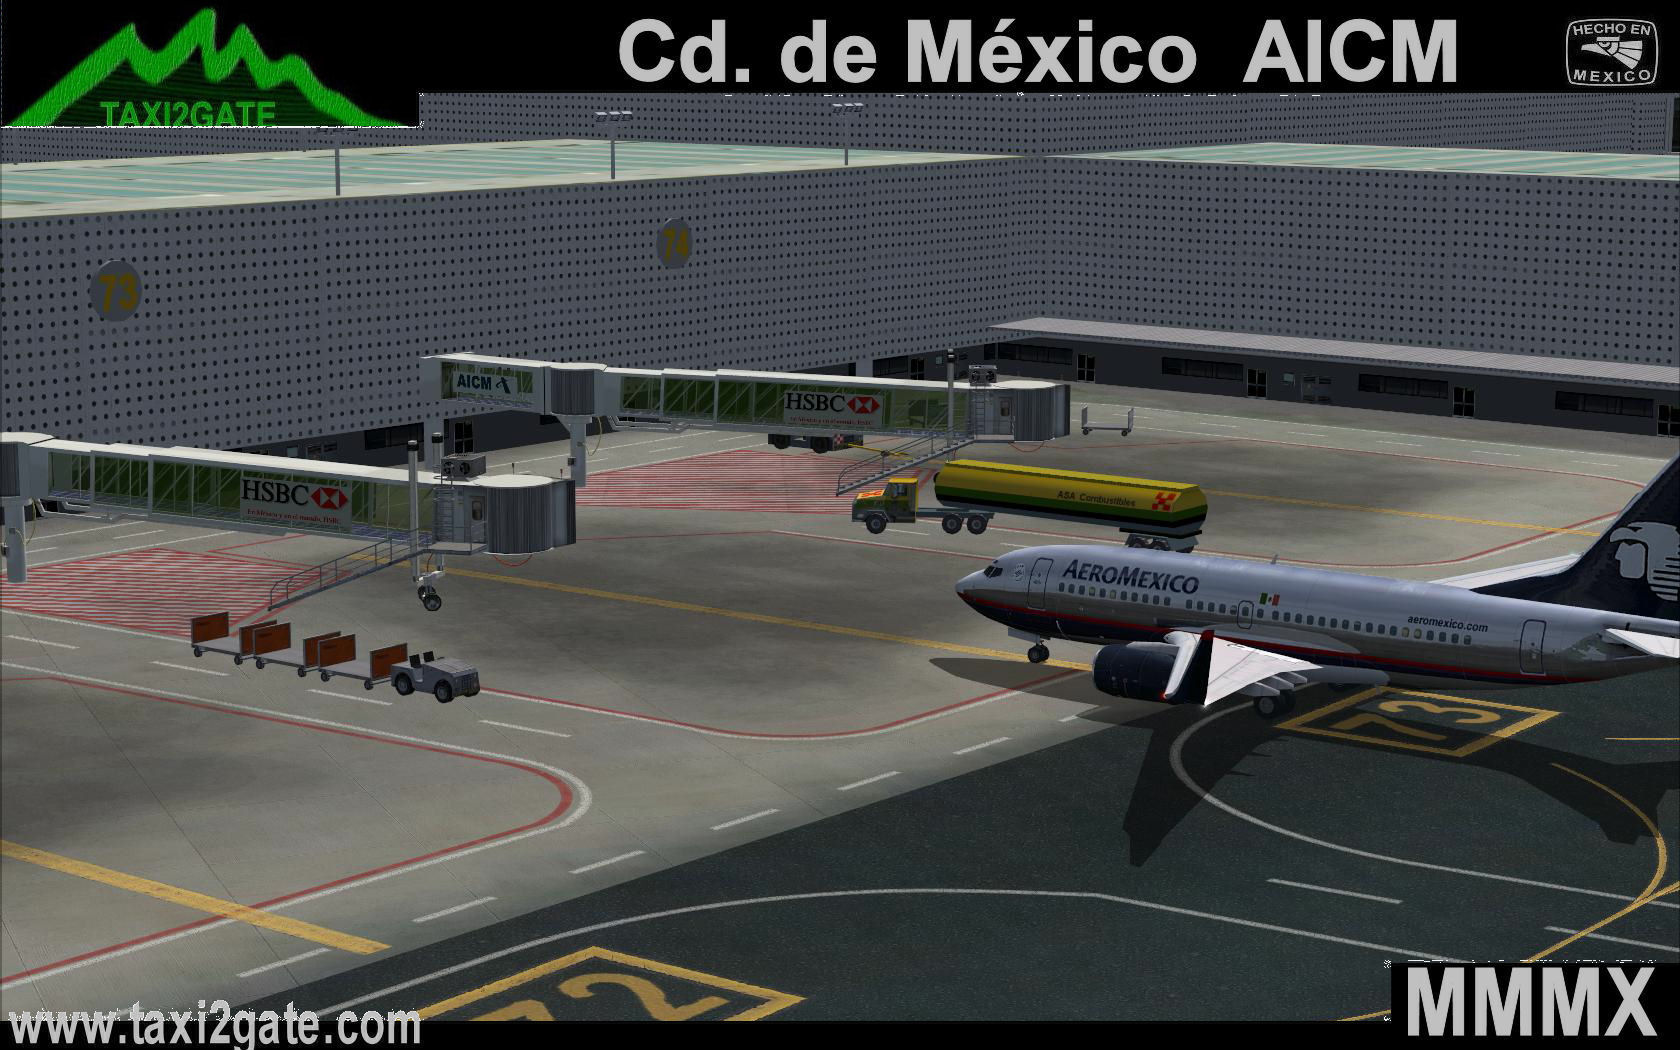 TAXI2GATE - MEXICO CITY INTERNATIONAL MMMX V2 FS2004